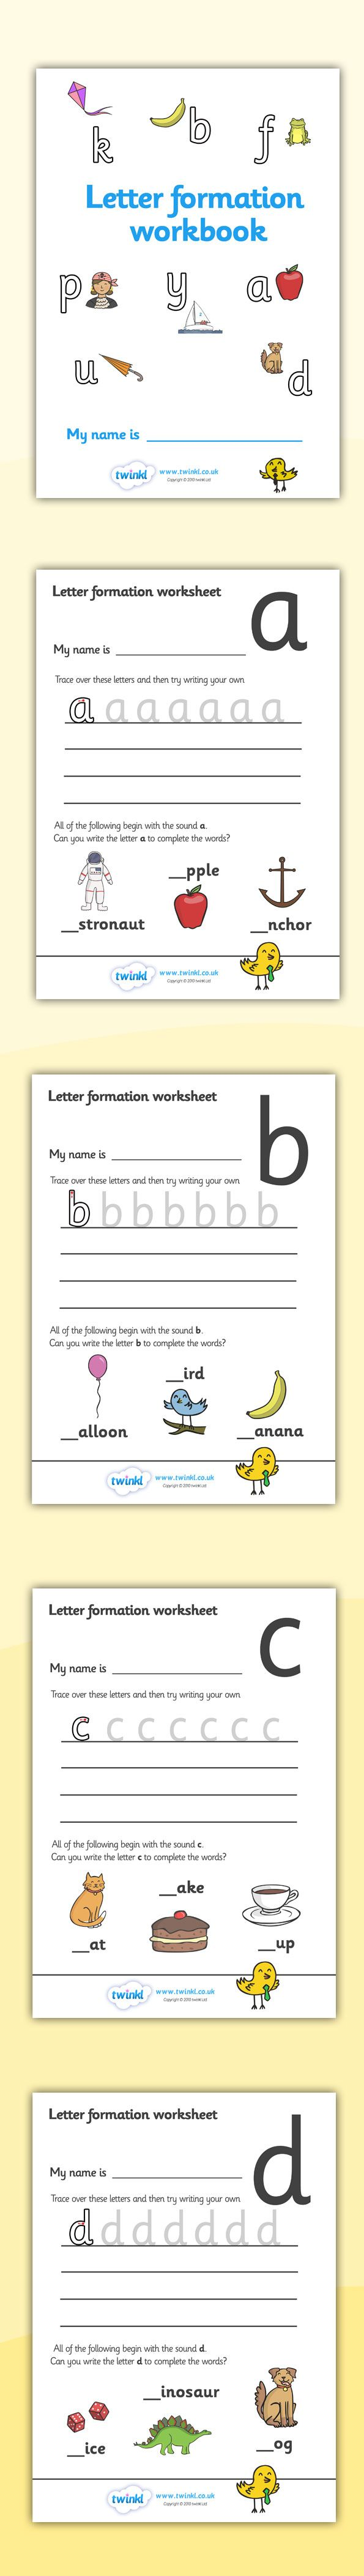 worksheet Letter Formation Worksheets 1000 ideas about letter formation on pinterest teaching workbook based our worksheets these workbooks feature for each of the alphabet